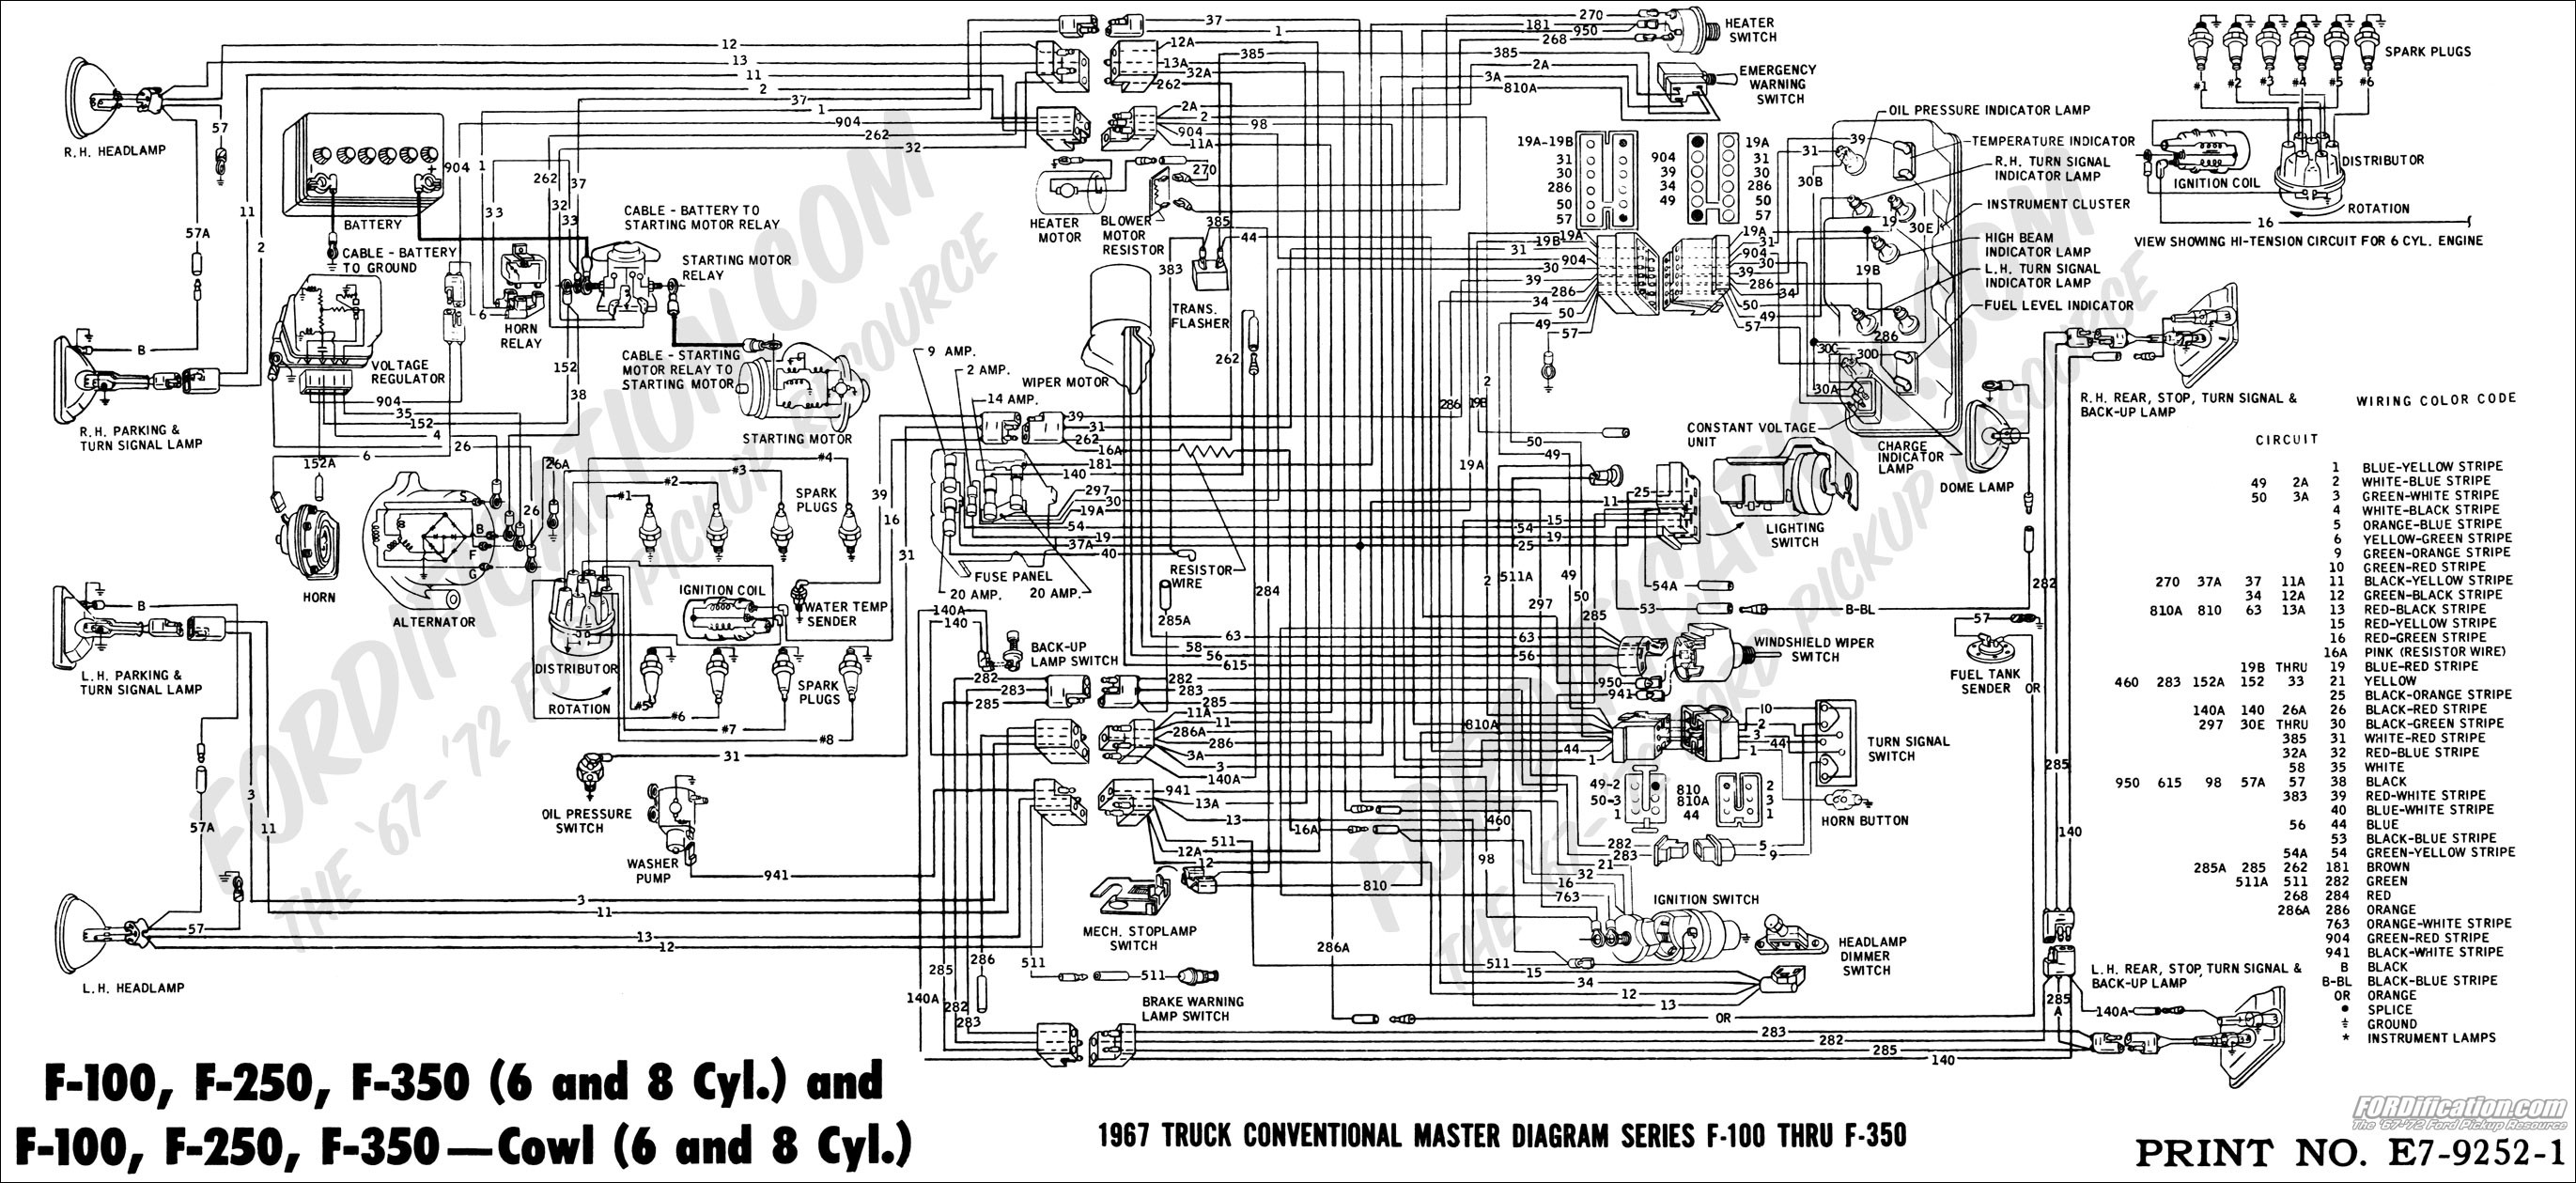 F350 Fuse Box Template Use Auto Electrical Wiring Diagram Wire For Dummies F Explained Diagrams